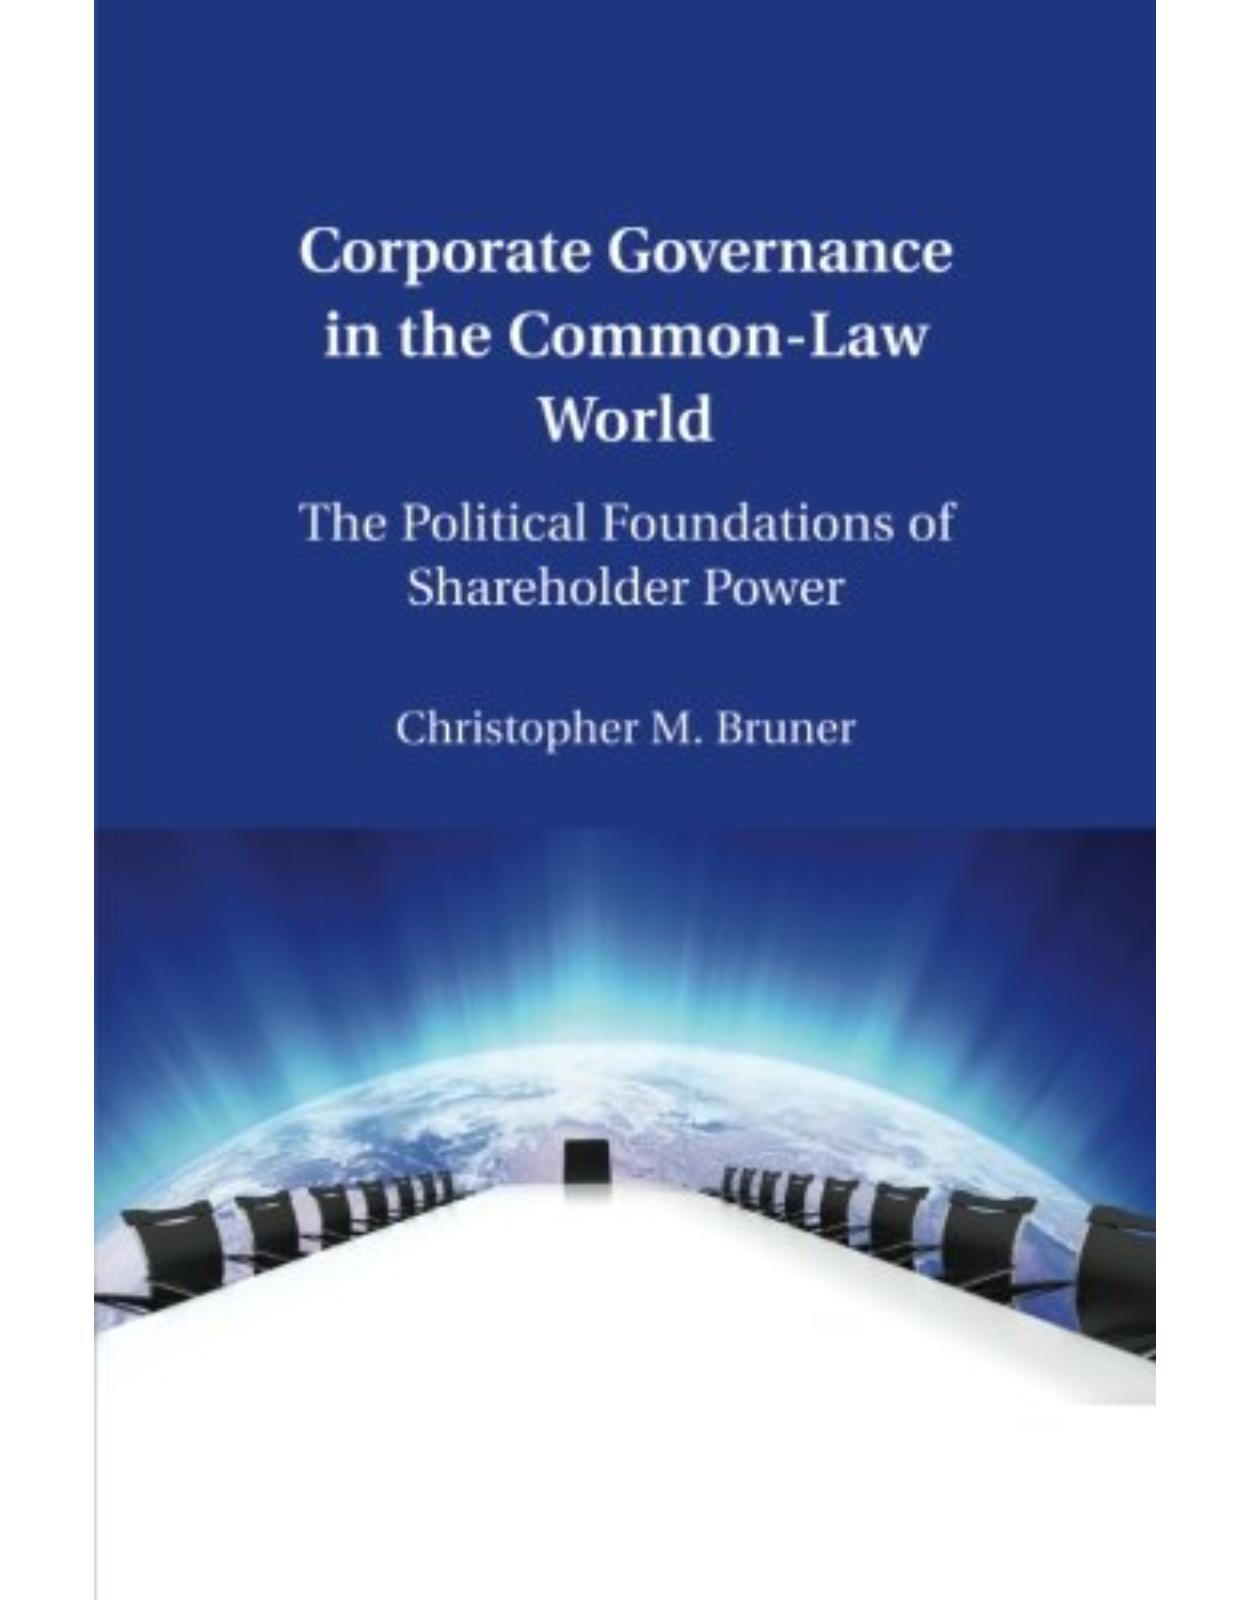 Corporate Governance in the Common-Law World: The Political Foundations of Shareholder Power